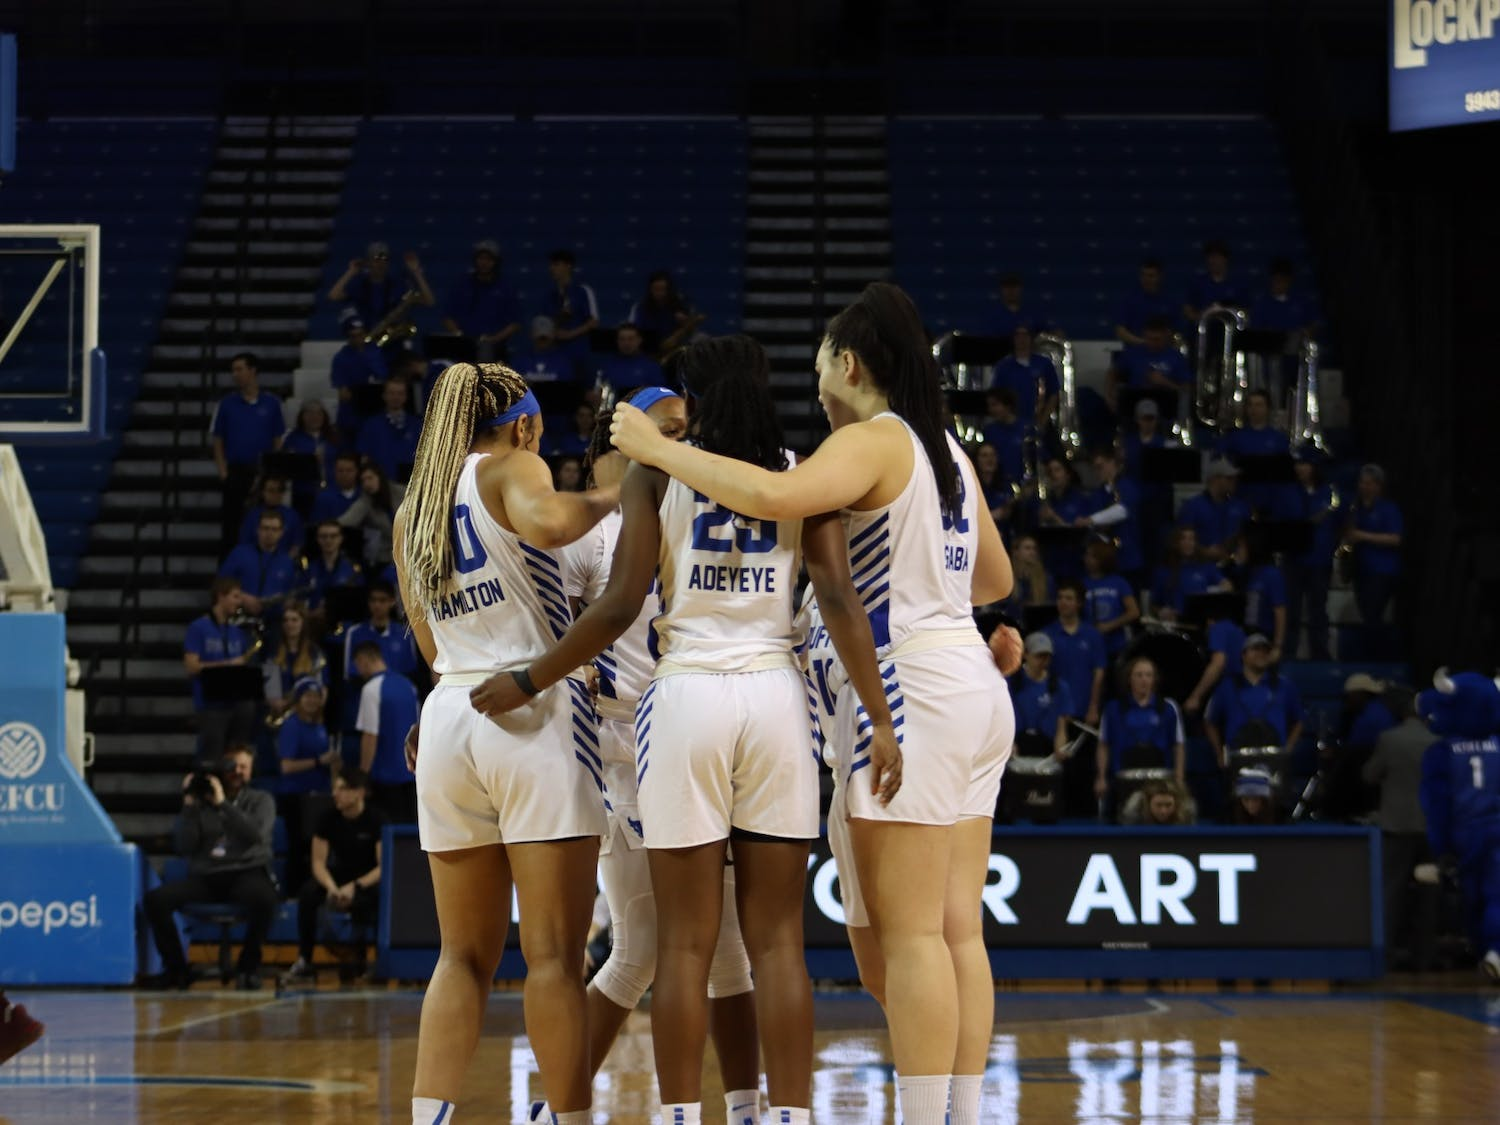 The women's basketball team gather in a team huddle before the start of a game.